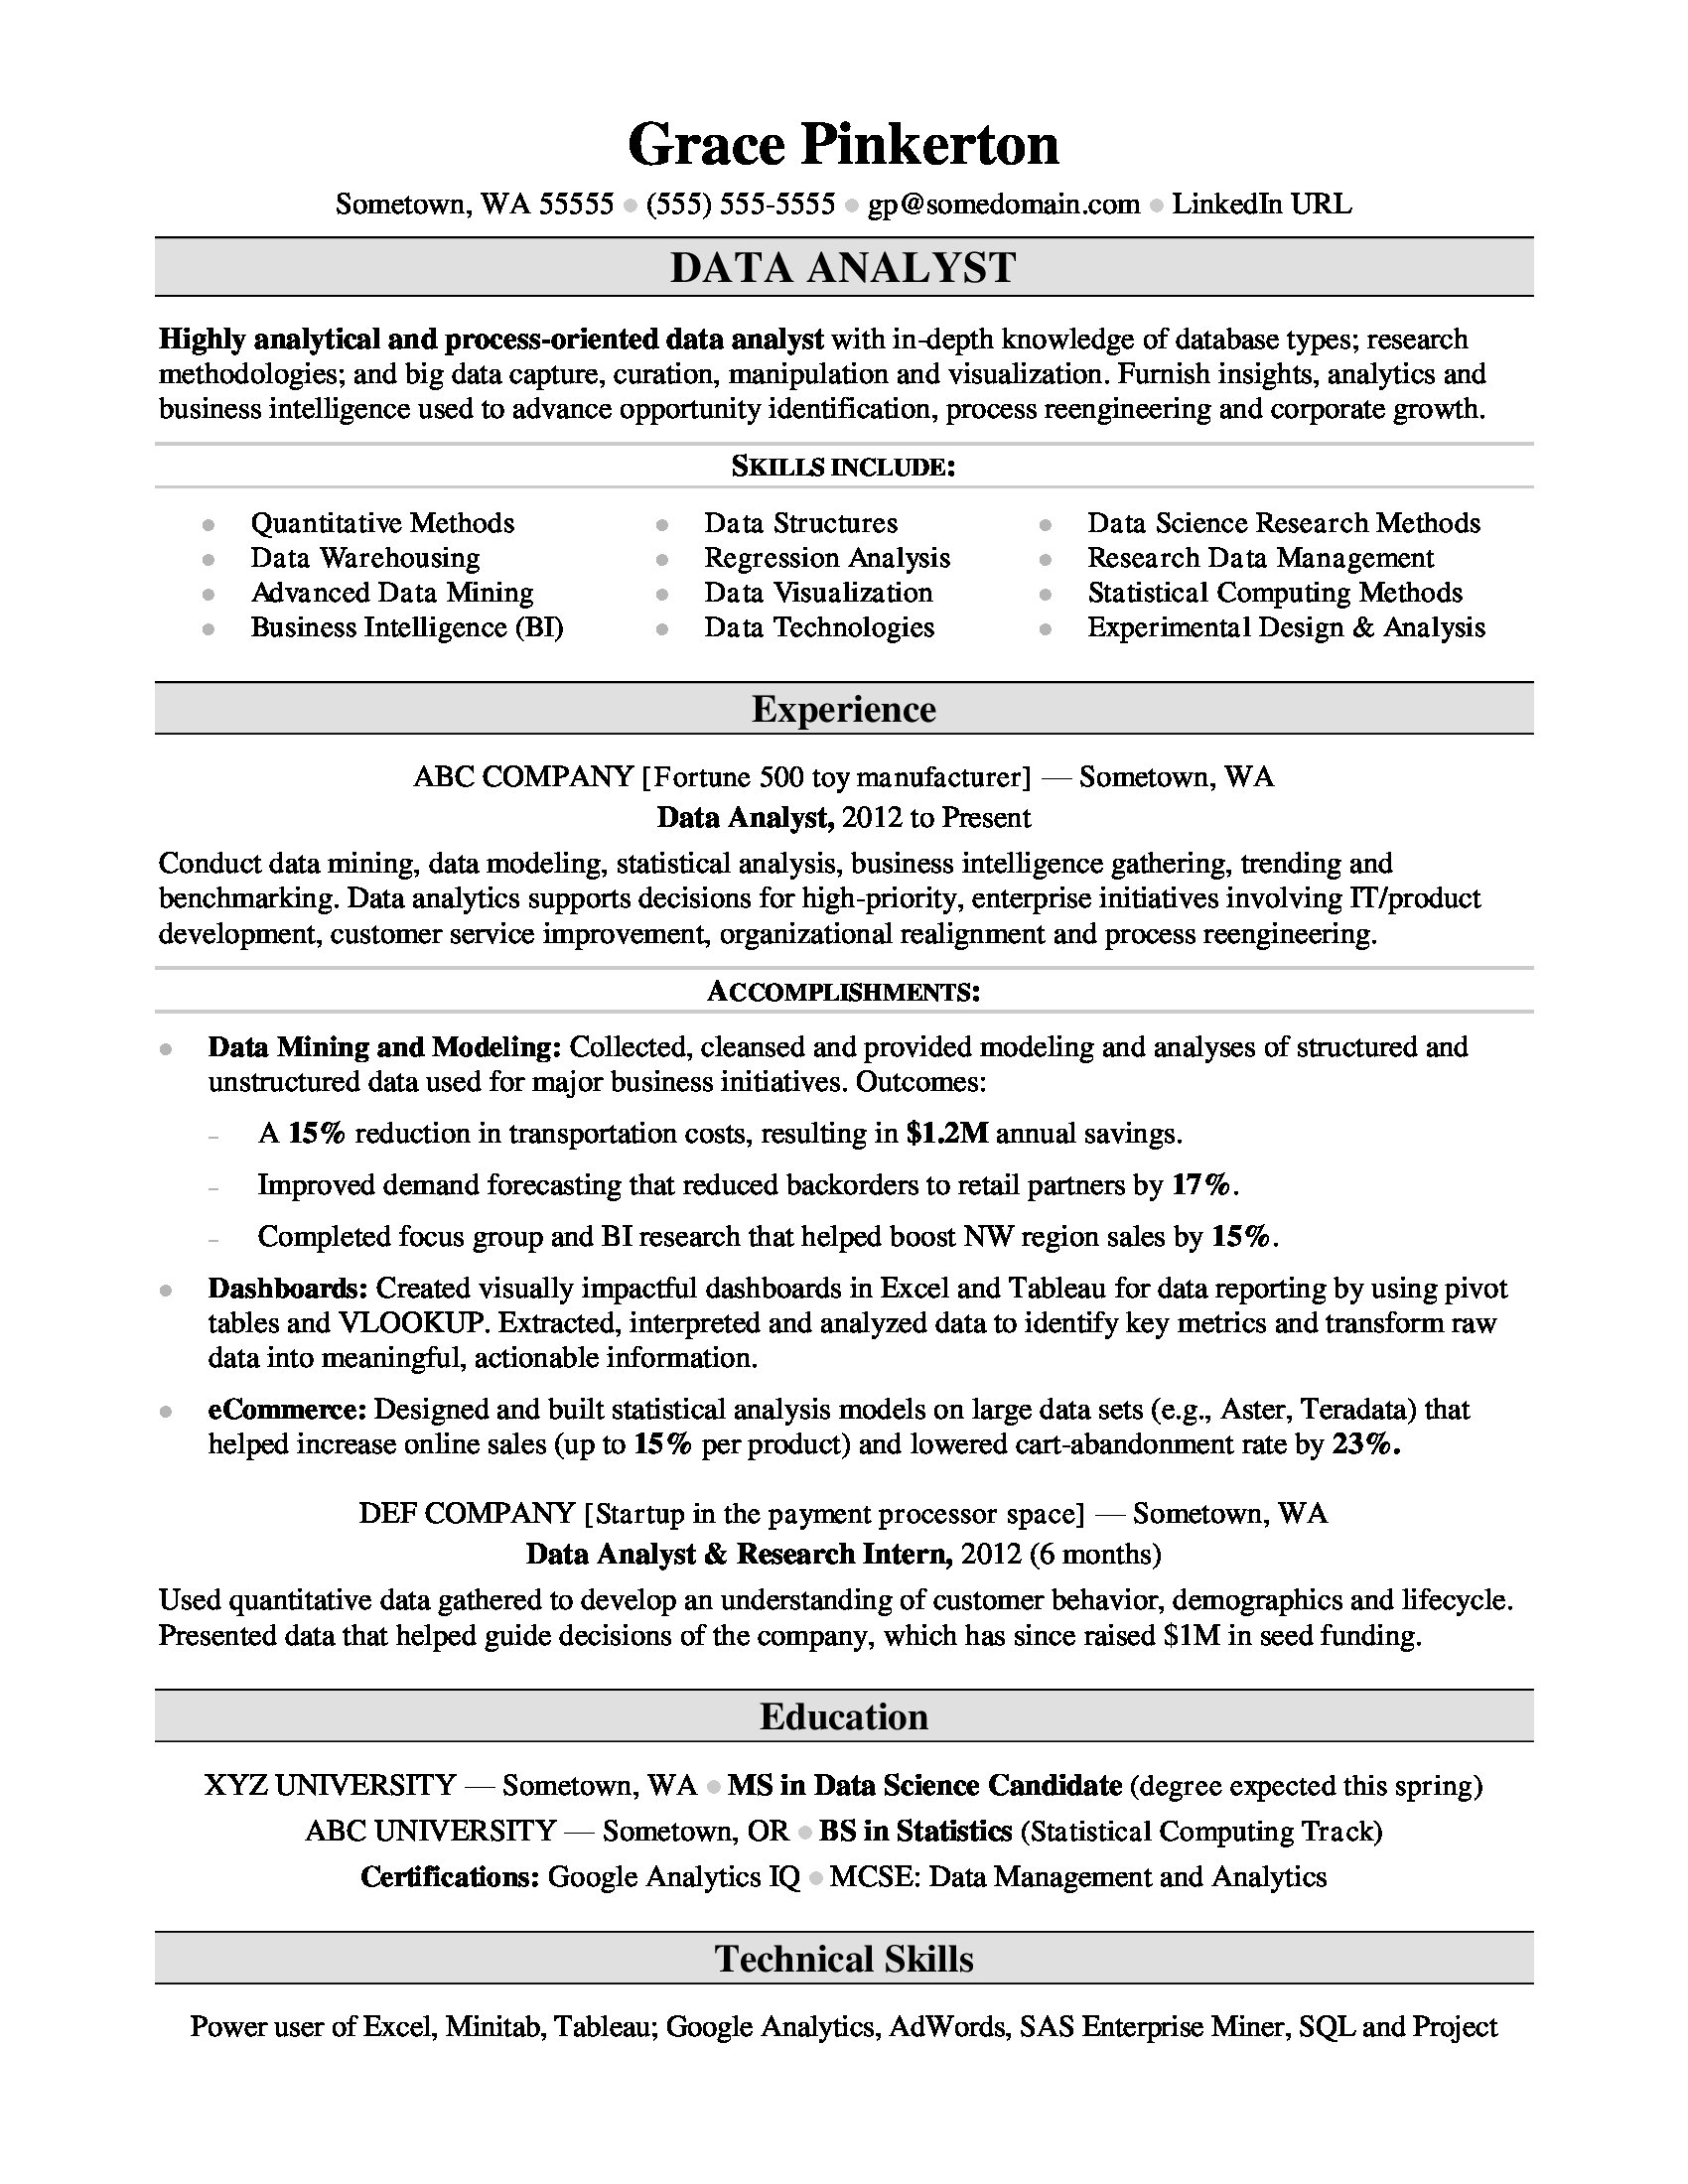 data analyst resume sample monster statements for dataanalyst cours optique geometrique Resume Power Statements For Resume